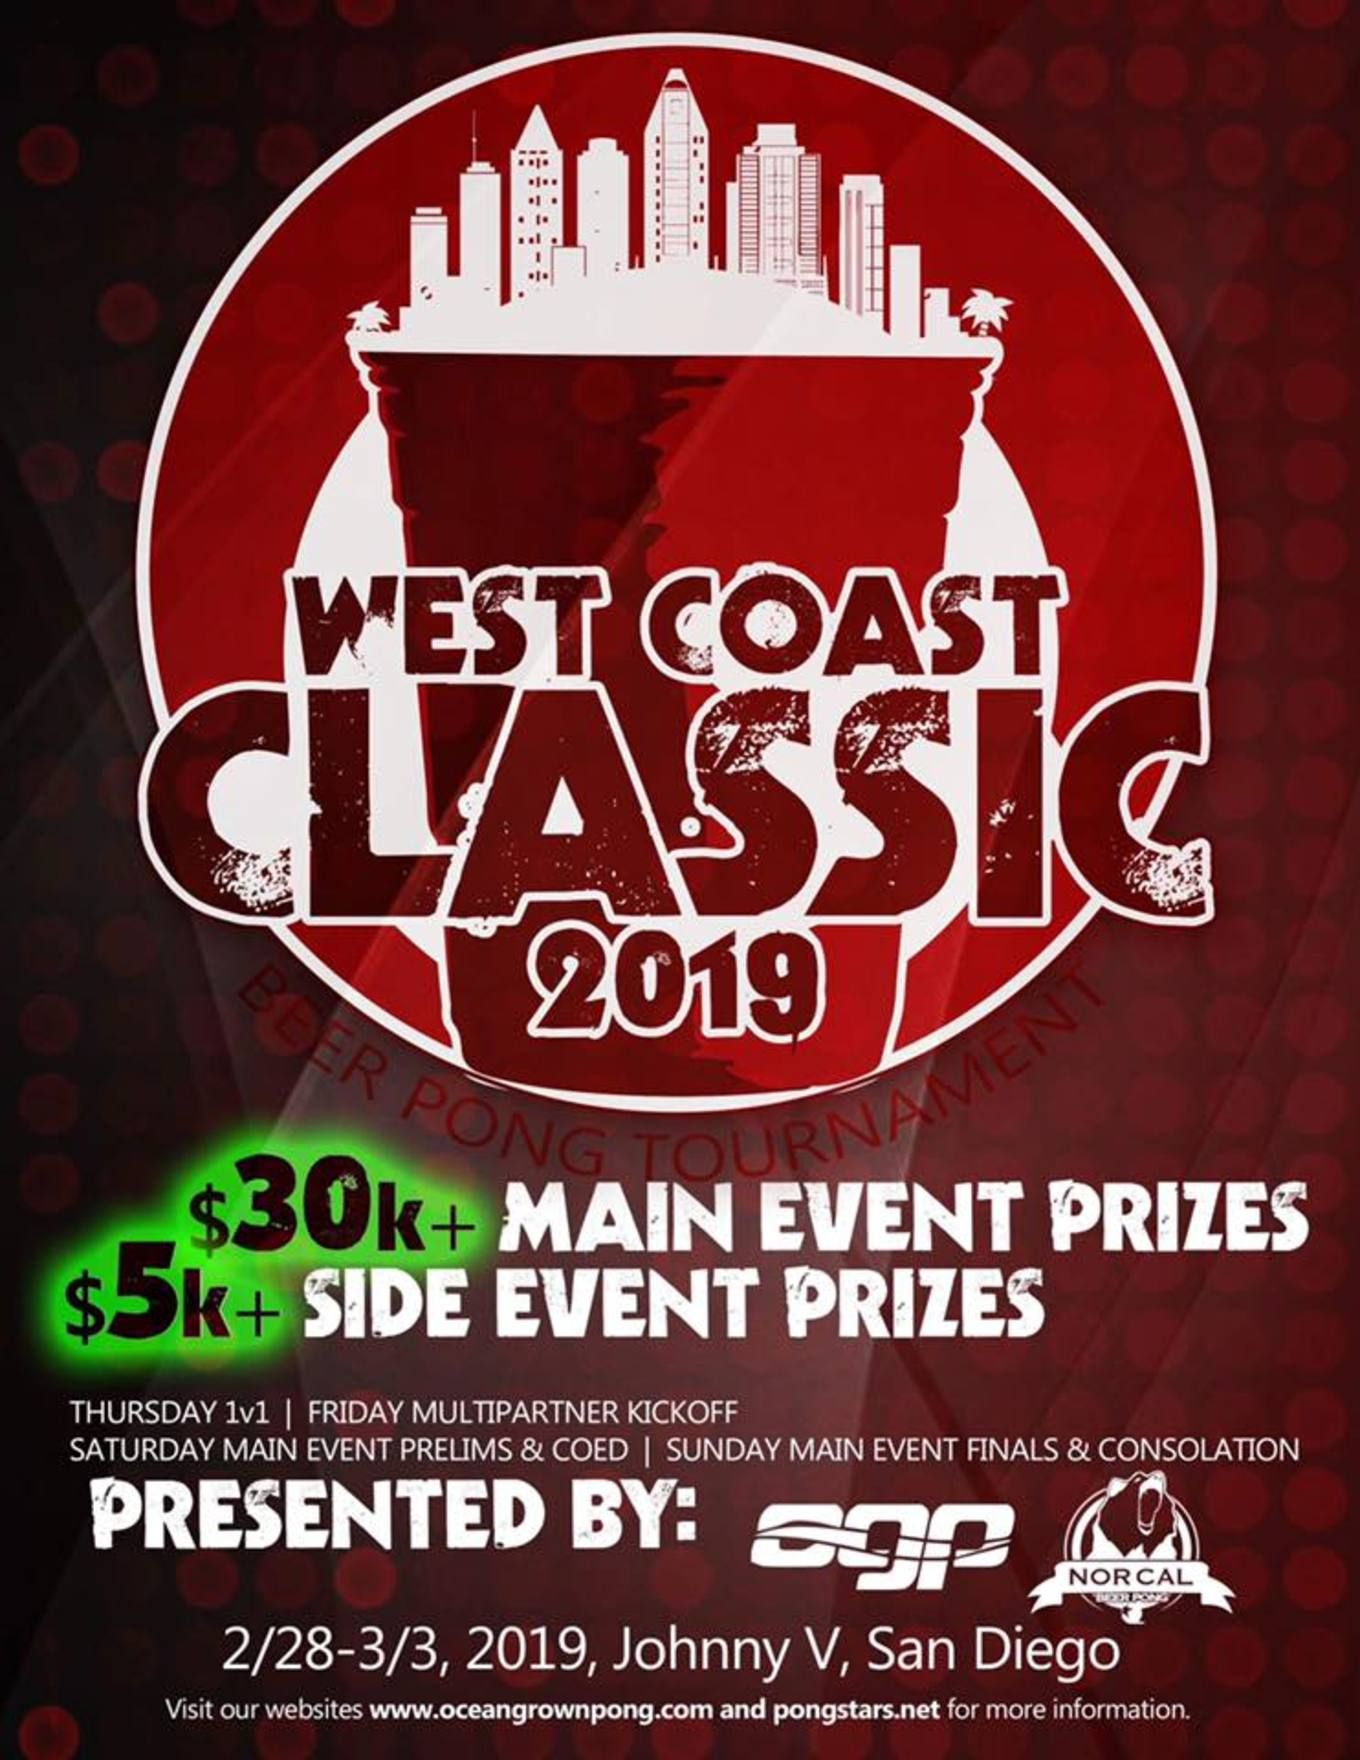 2nd Annual West Coast Classic 35000 Beer Pong Championships